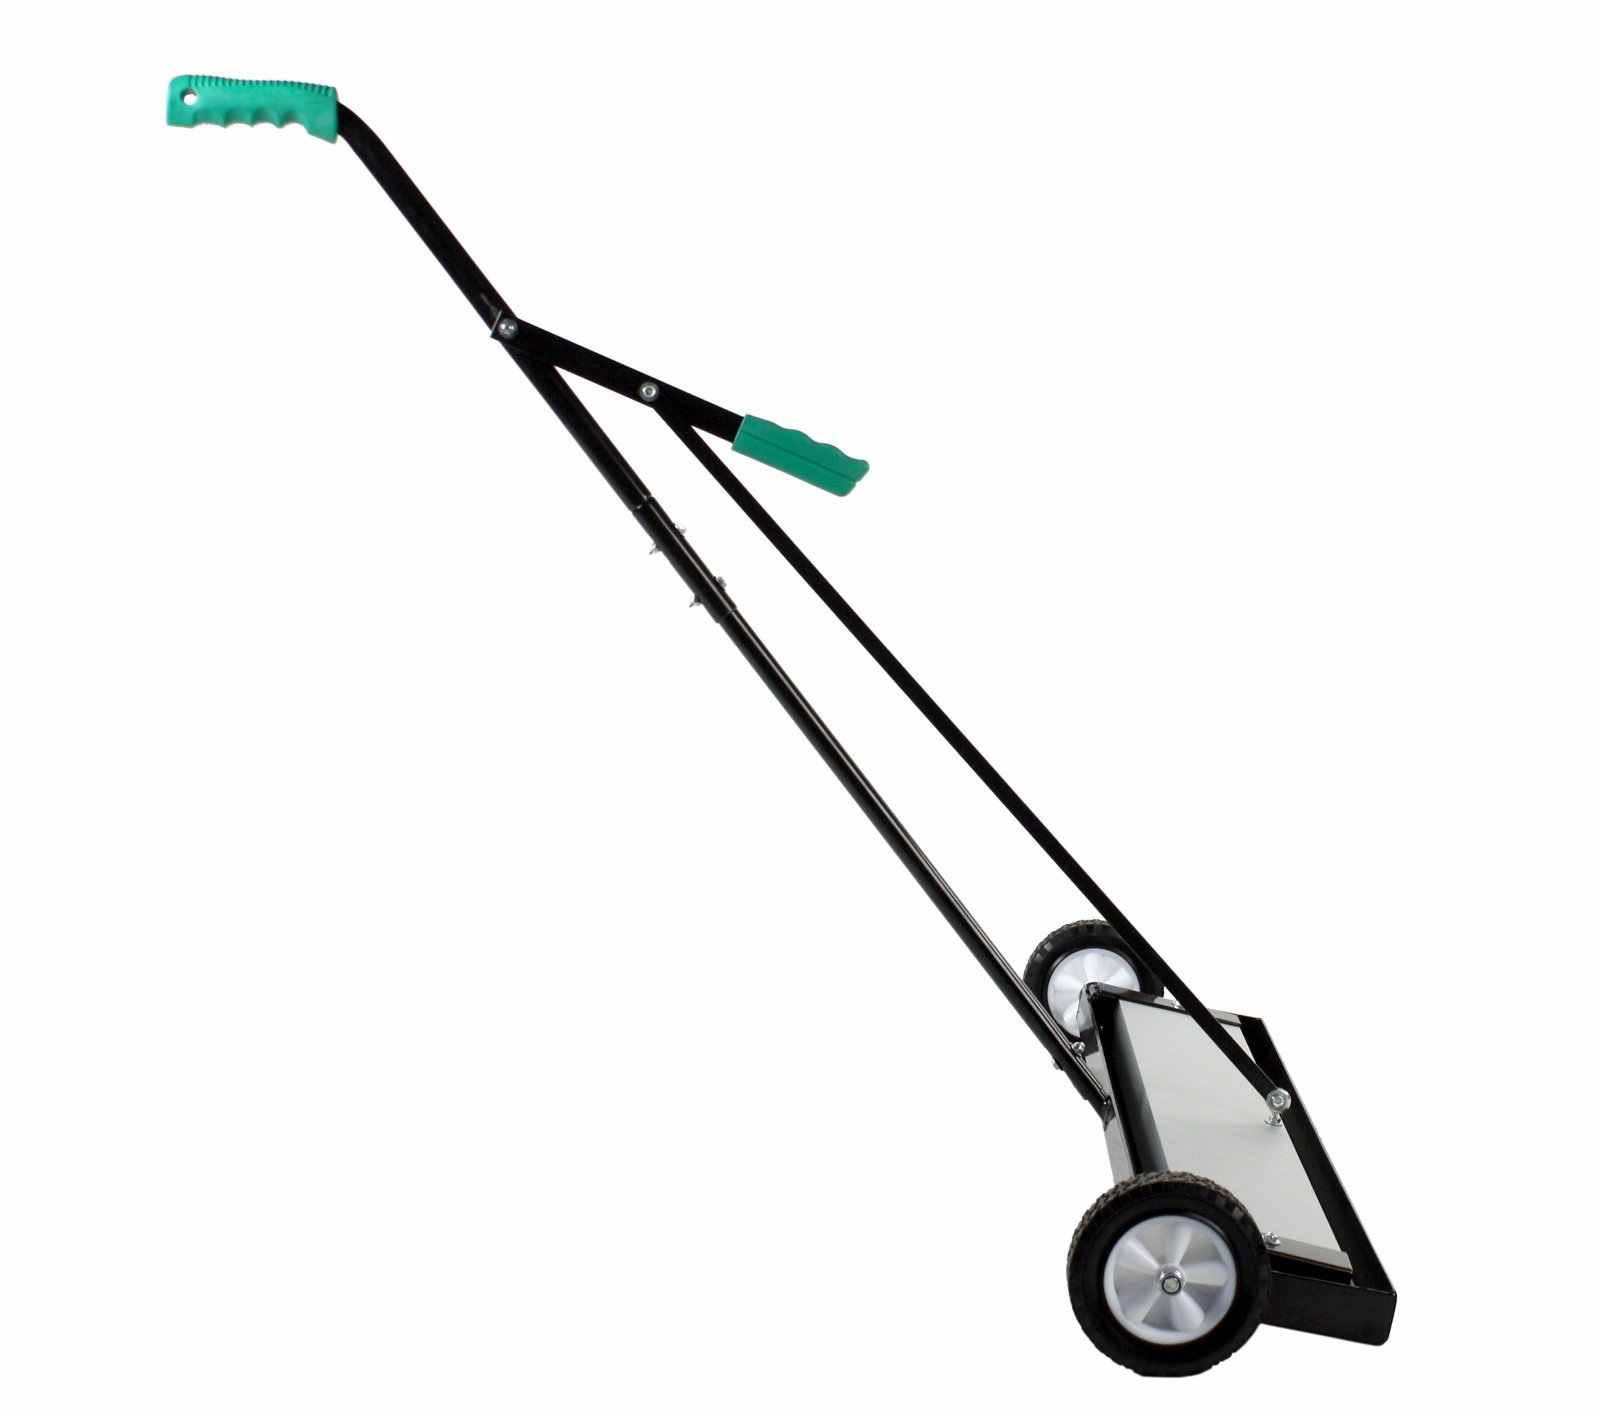 Steel Dragon Tools 36'' Magnetic Roller Sweeper Magnet Tool with Release Lever by Steel Dragon Tools (Image #4)